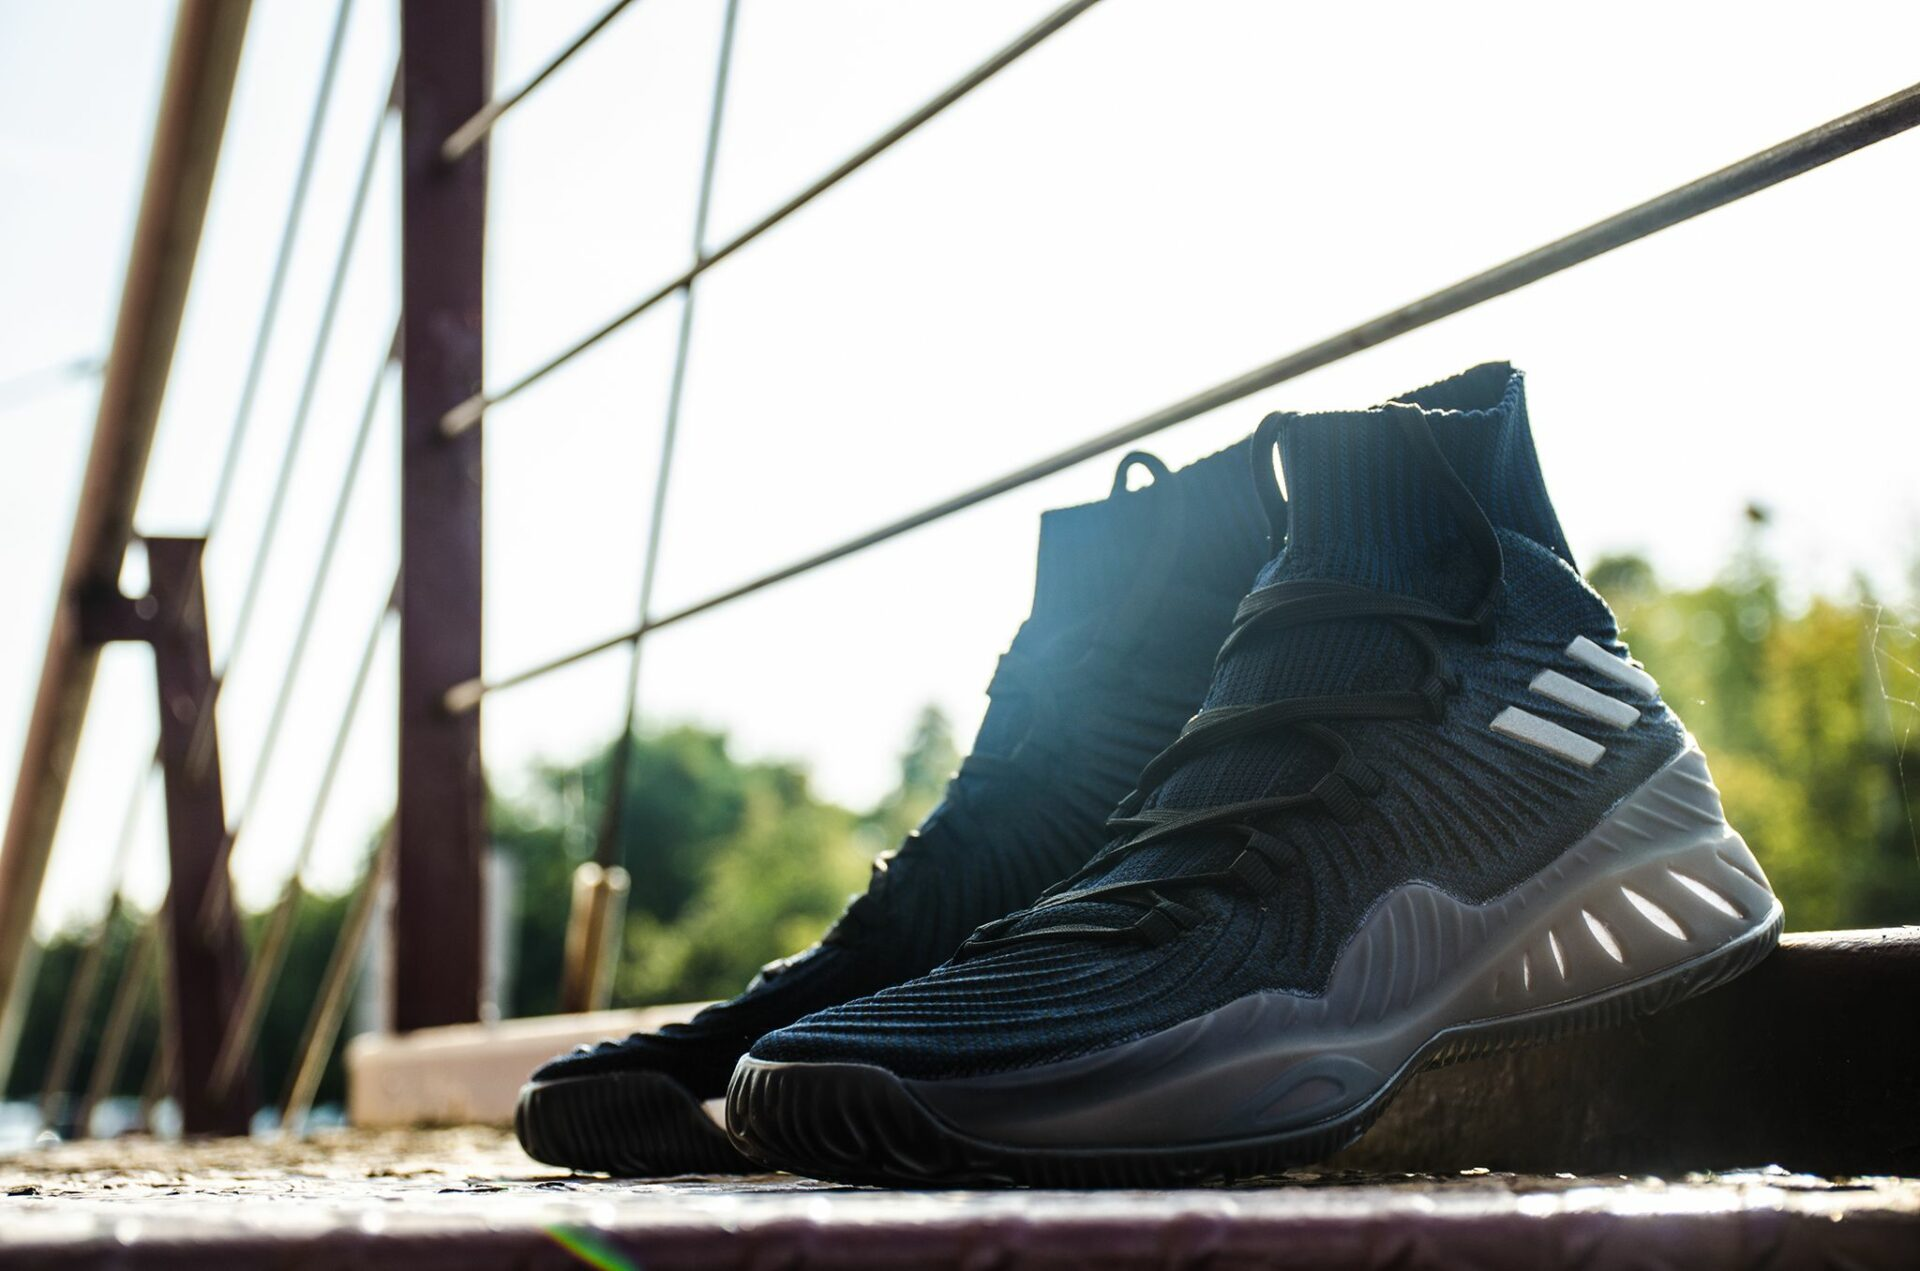 Adidas Crazy Explosive Primeknit Review: A Breakdown of 2017's King (2020)